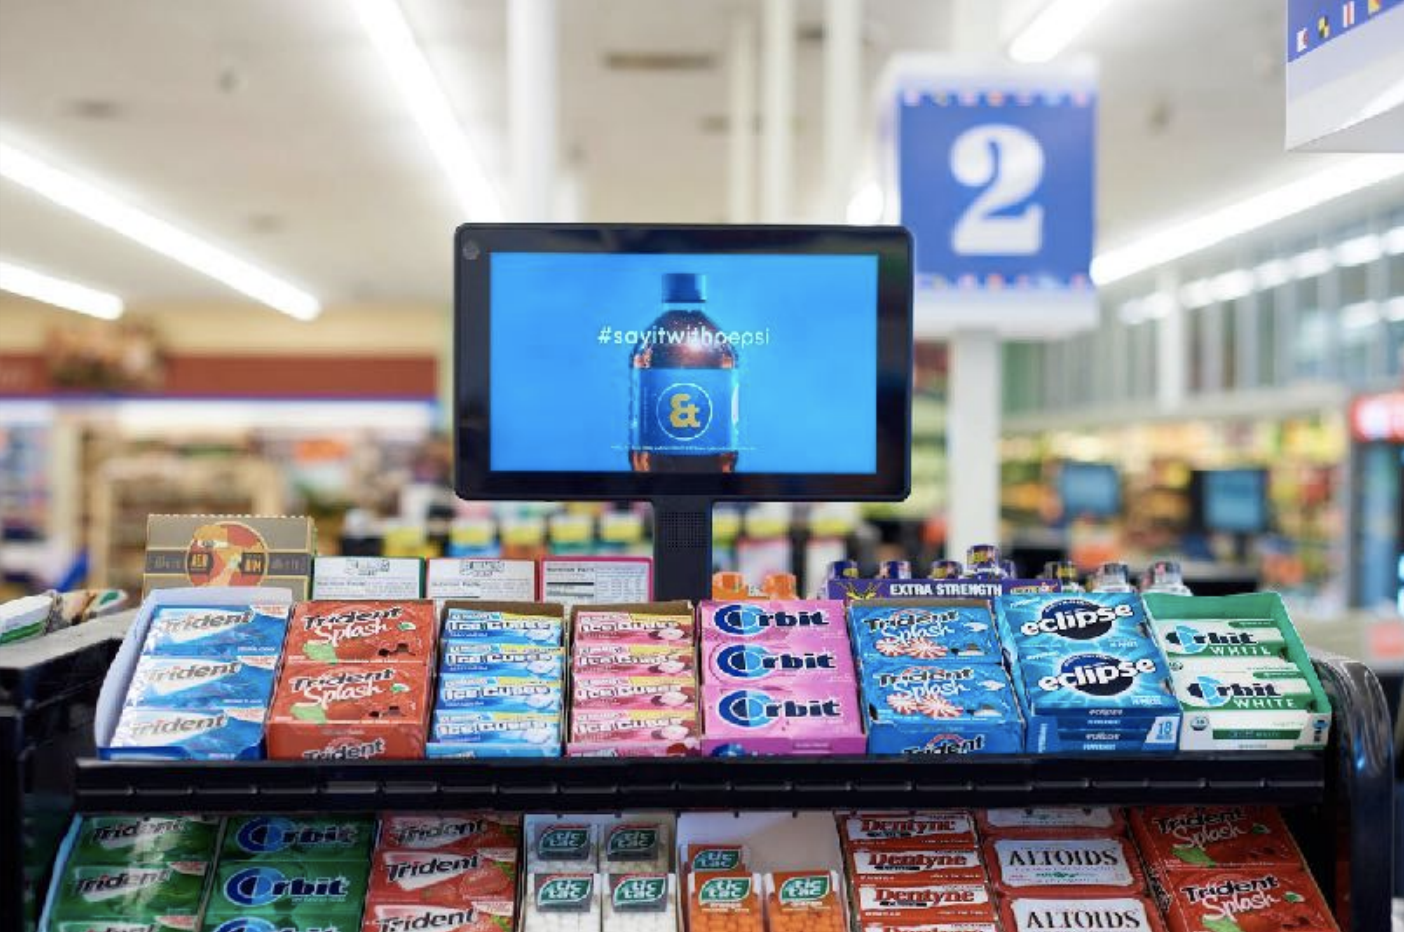 DIGITAL CHECKOUT SCREENS are the perfect way to reach shoppers as they are contemplating their brand purchases. These 12 inch digital screens enable full-motion, branded video messages.